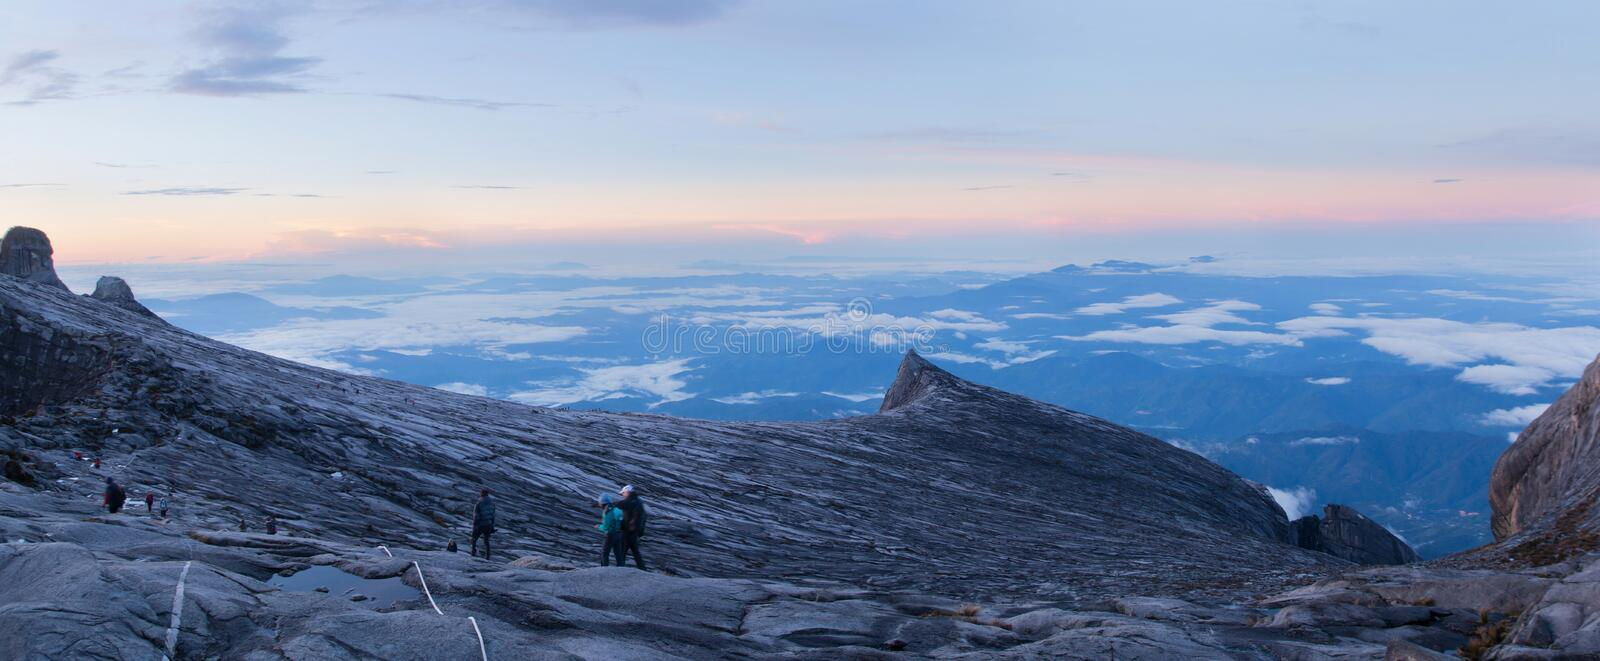 Mount Kinabalu Mountain Peak Sunrise Panorama View royalty free stock image